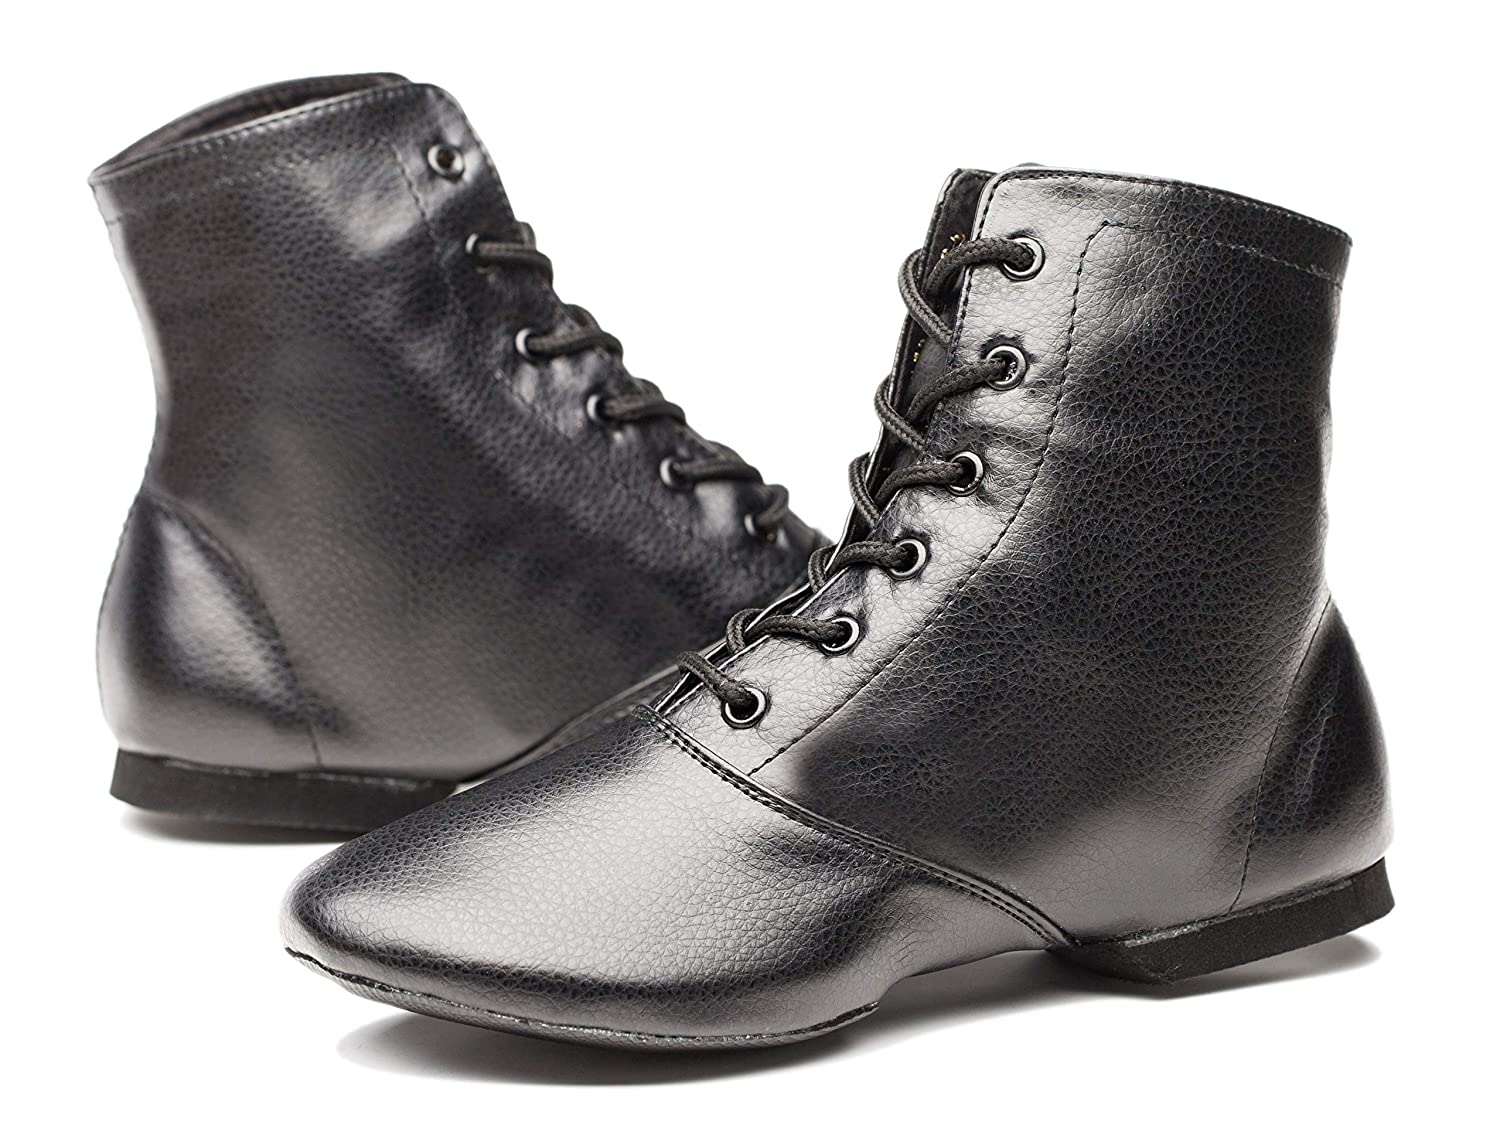 Men's Swing Dance Clothing, Vintage Dance Clothes Joocare Mens Black Leather Split Sole Jazz Dance Boots Shoes $19.99 AT vintagedancer.com